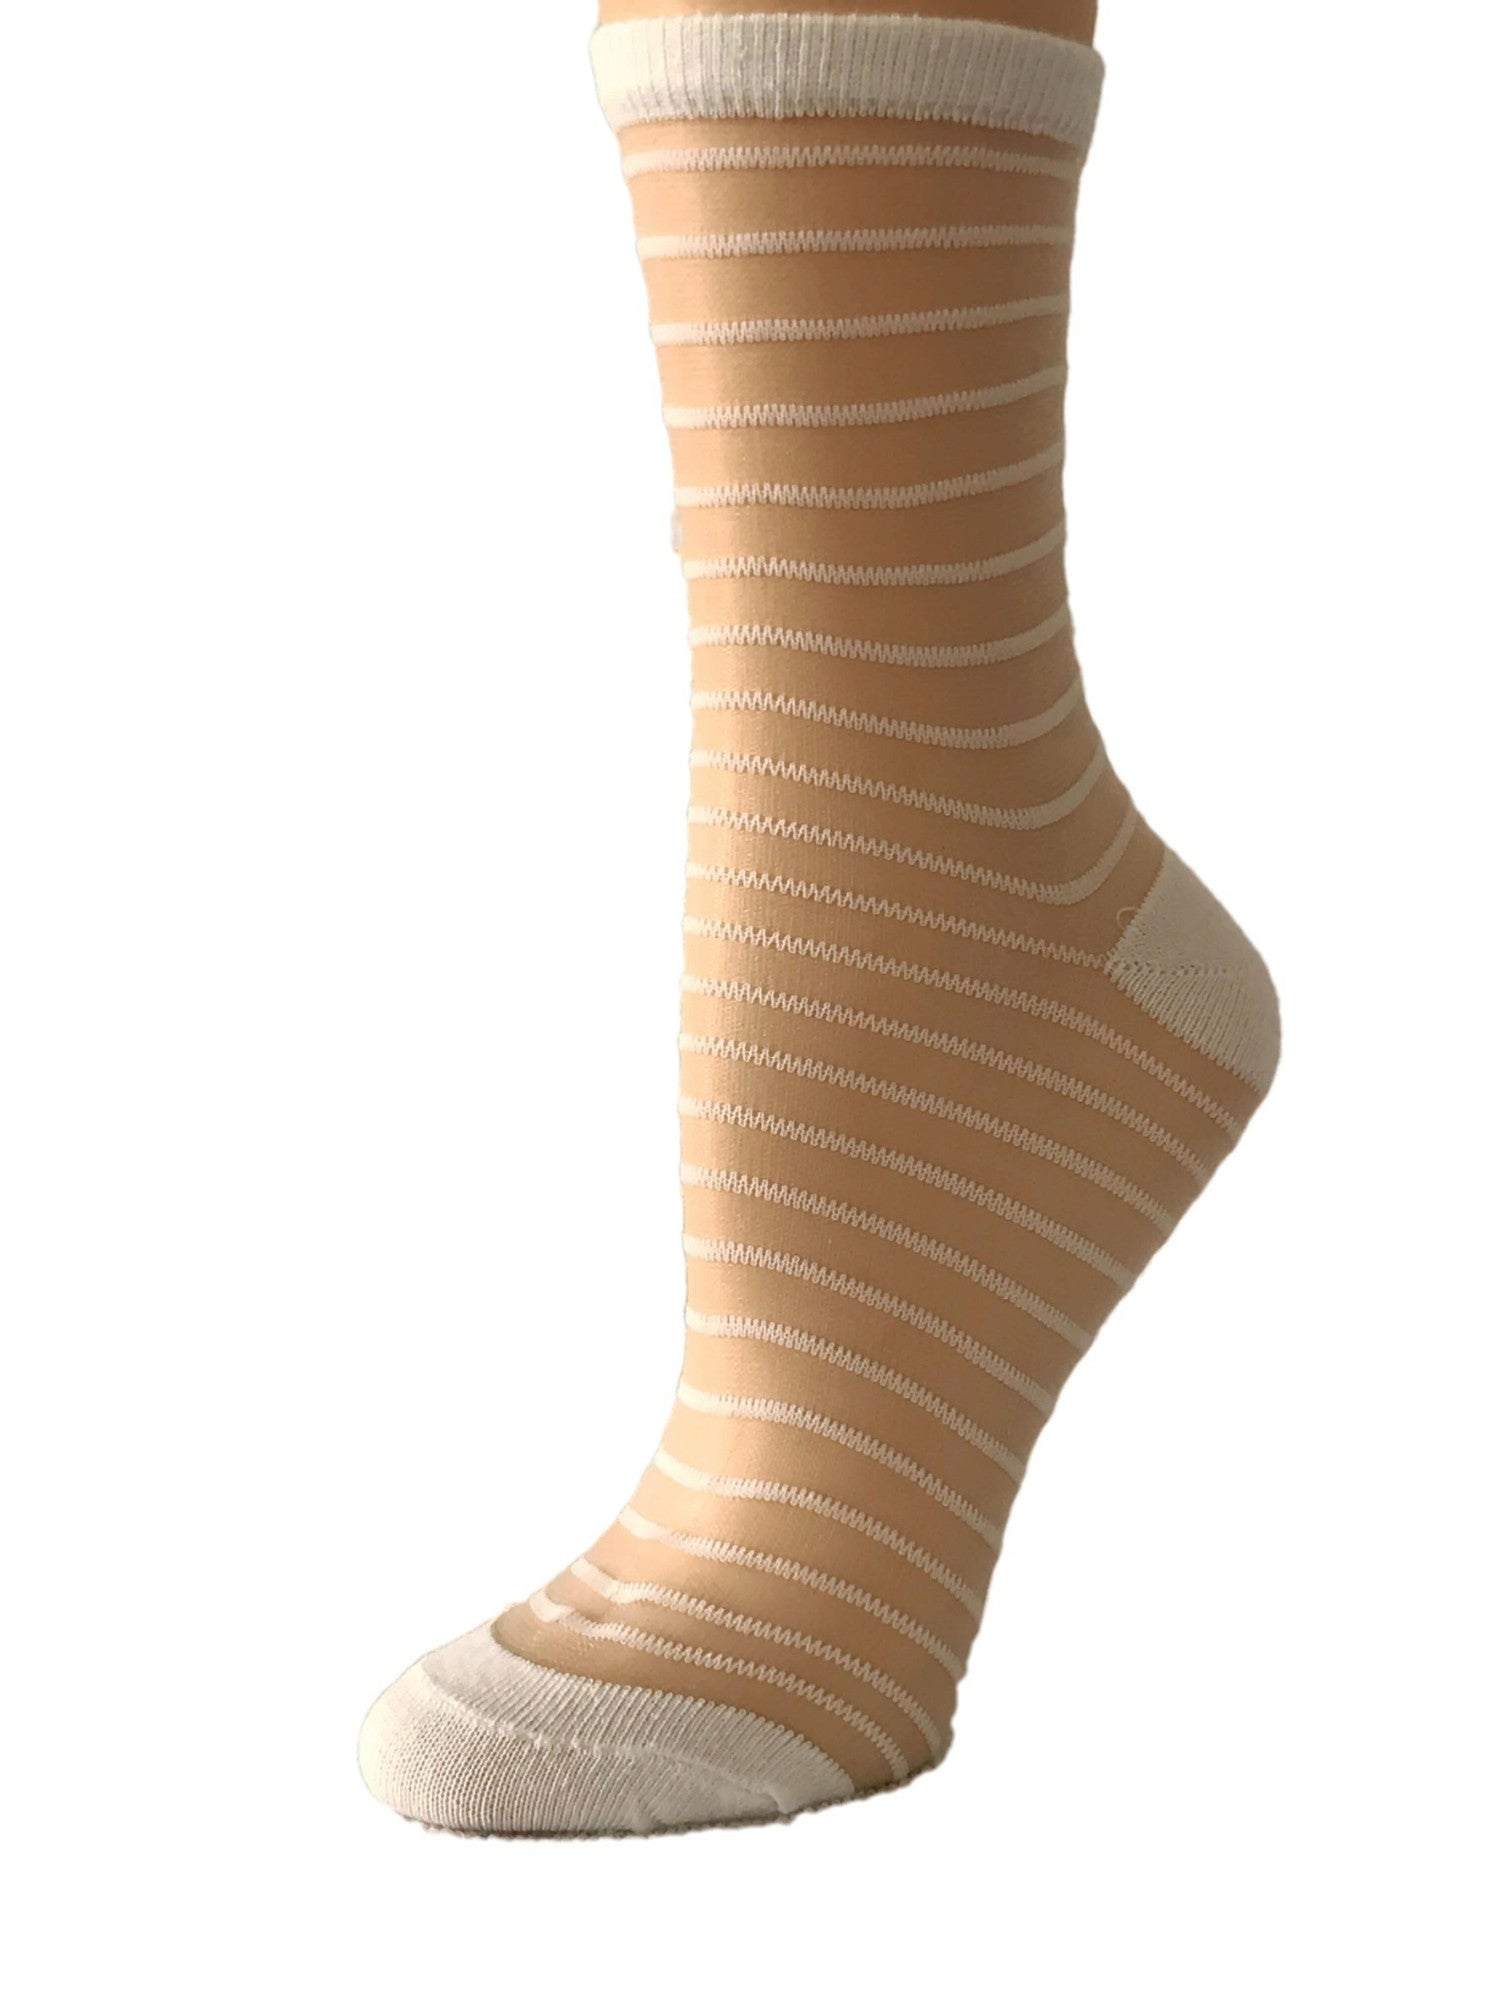 White Striped Sheer Socks-Global Trendz Fashion®